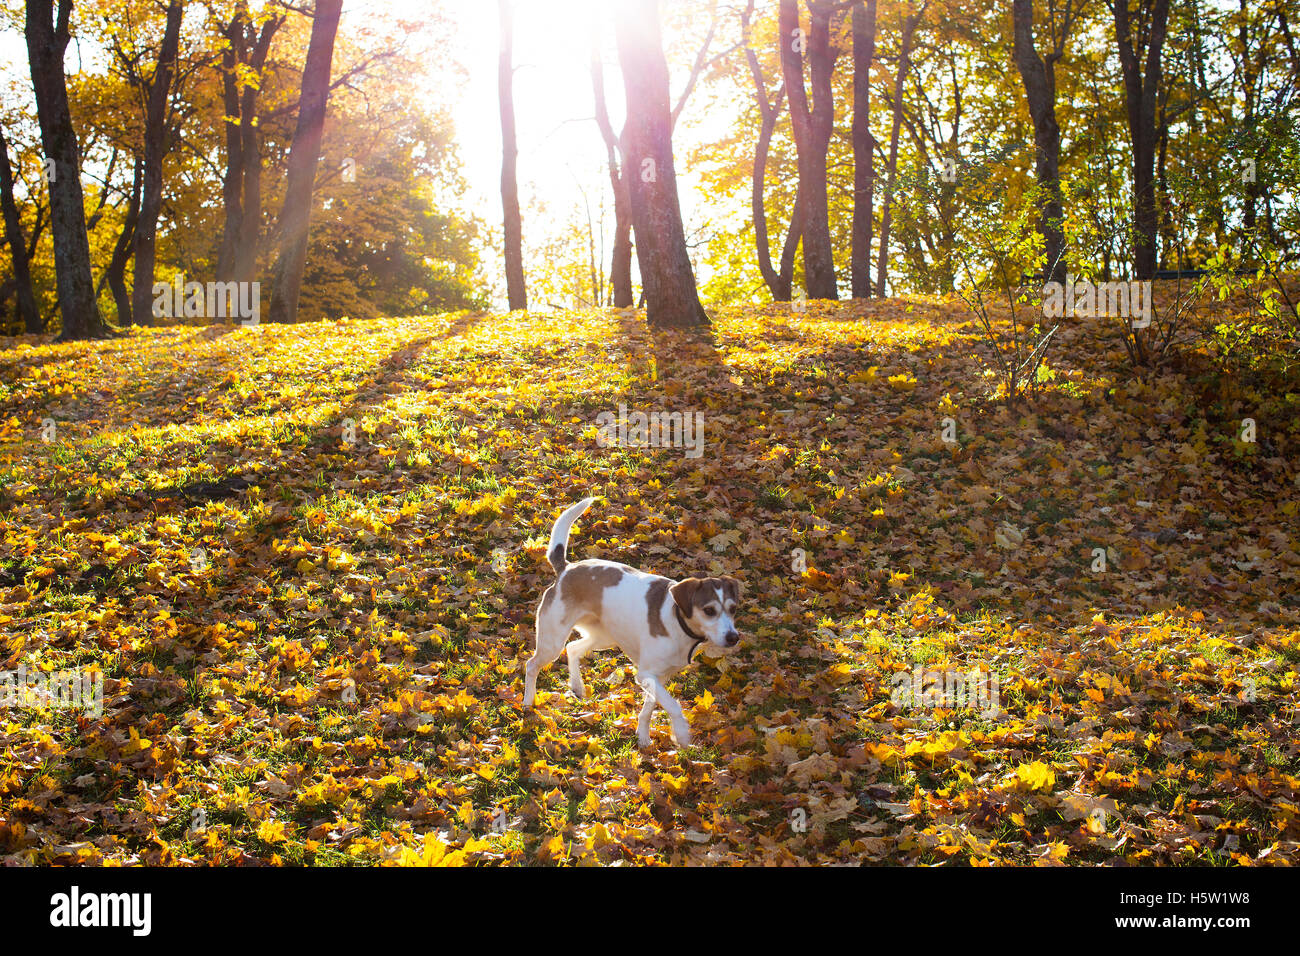 A dog is running in the forest and the light of the sun between the autumn colors of the trees. - Stock Image